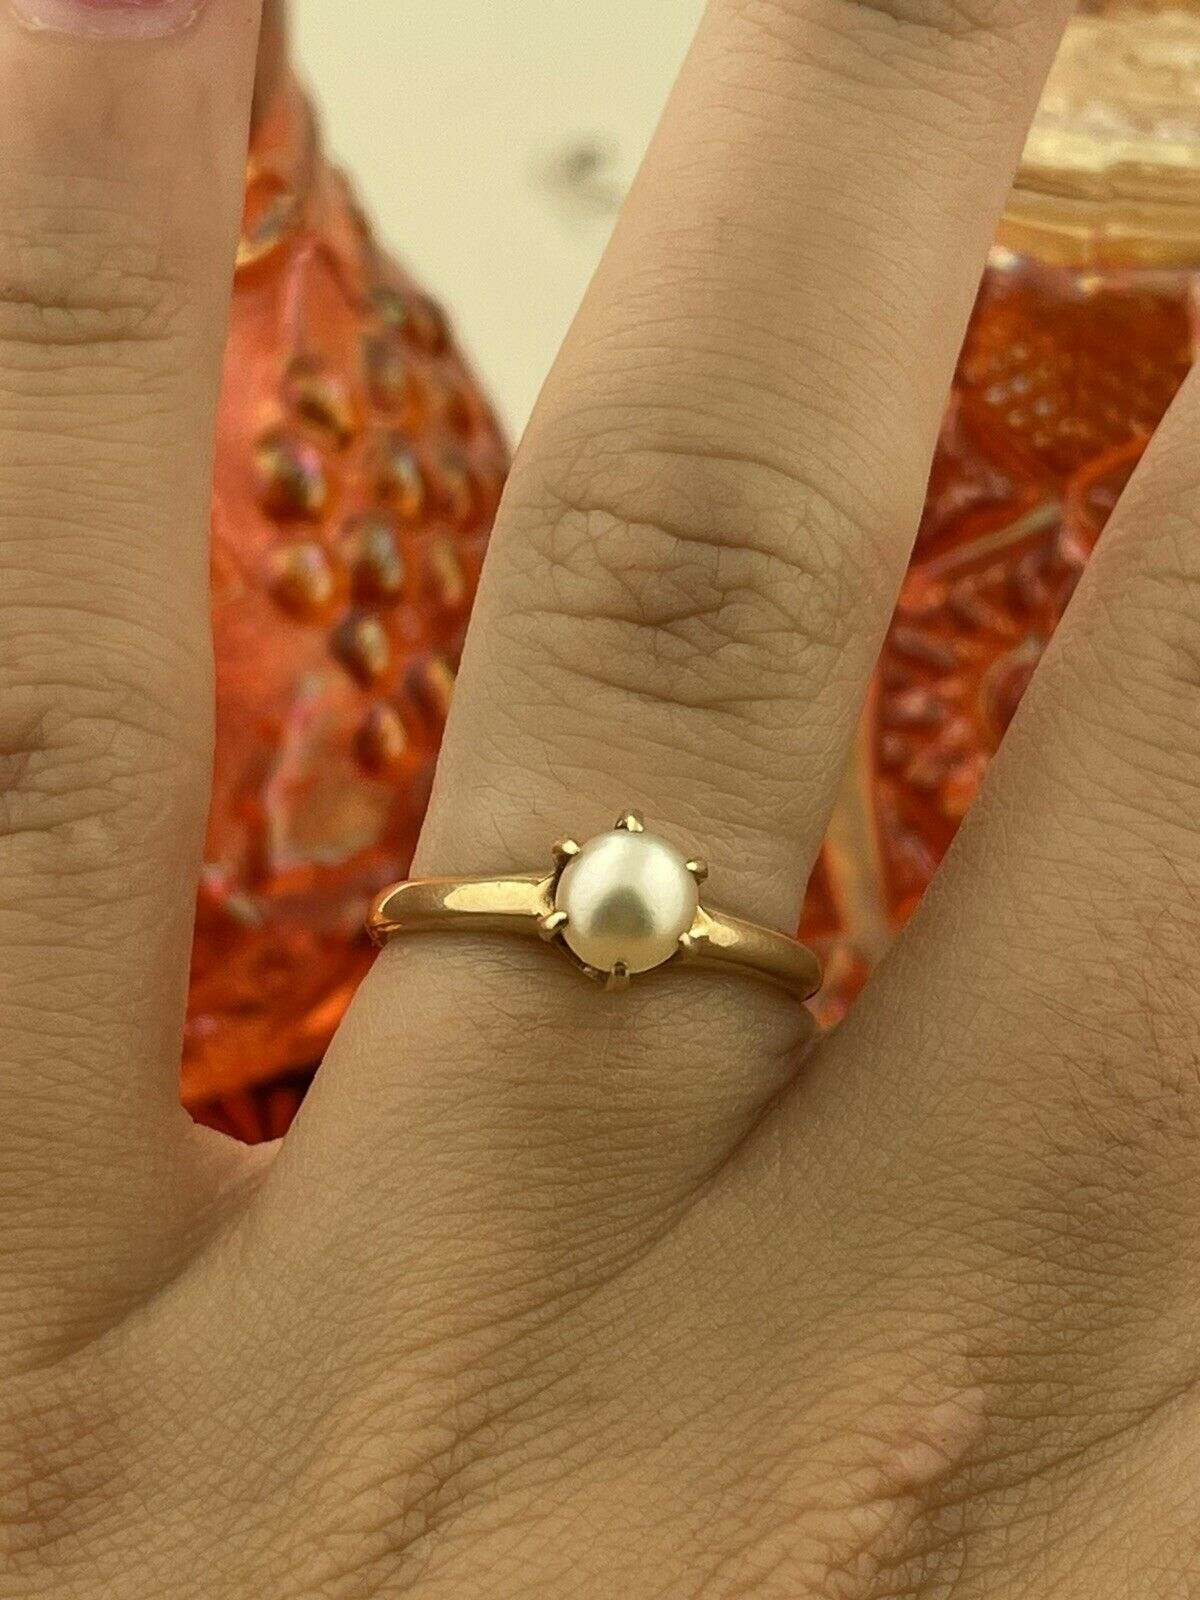 14k Solid Yellow Gold Solitaire Genuine Pearl ring - image 2